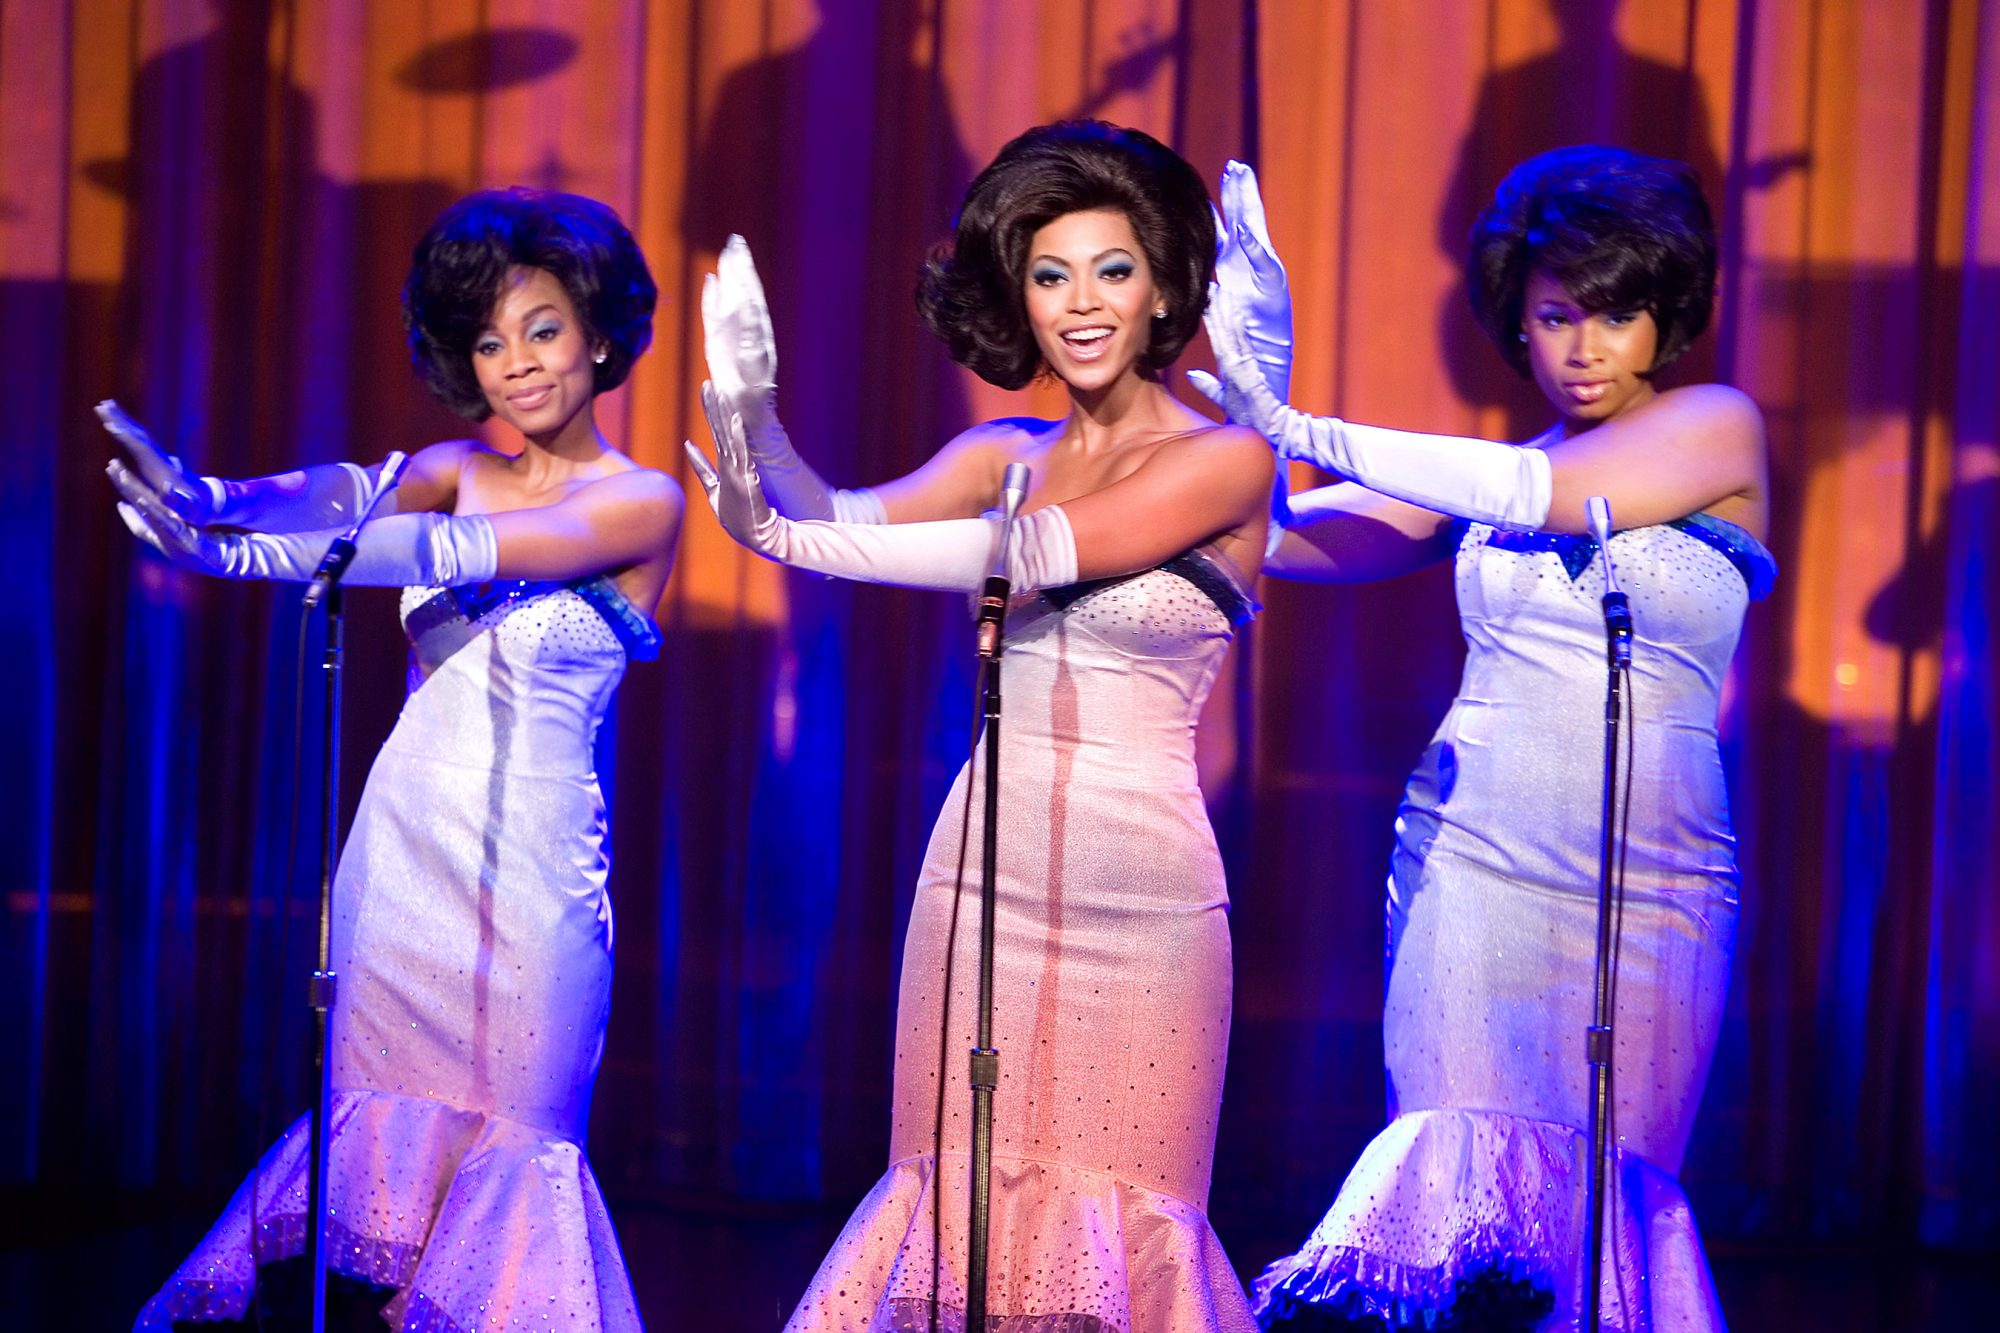 Dreamgirls: Director's Extended Edition Blu-ray